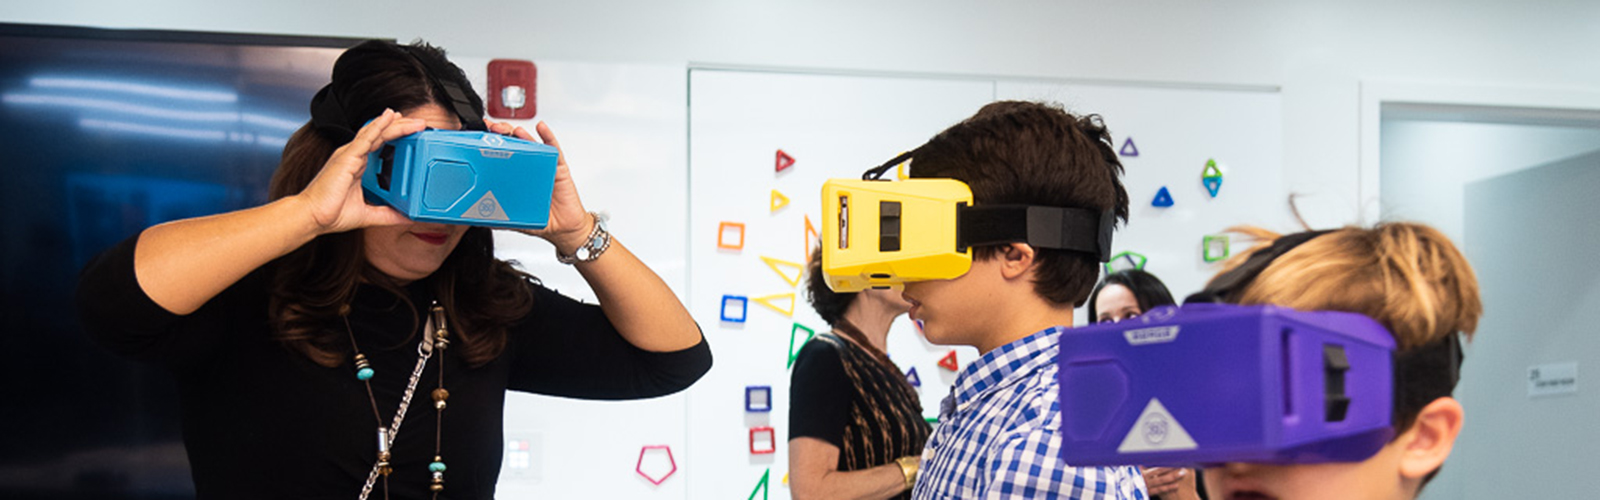 Students experiment with virtual reality goggles.